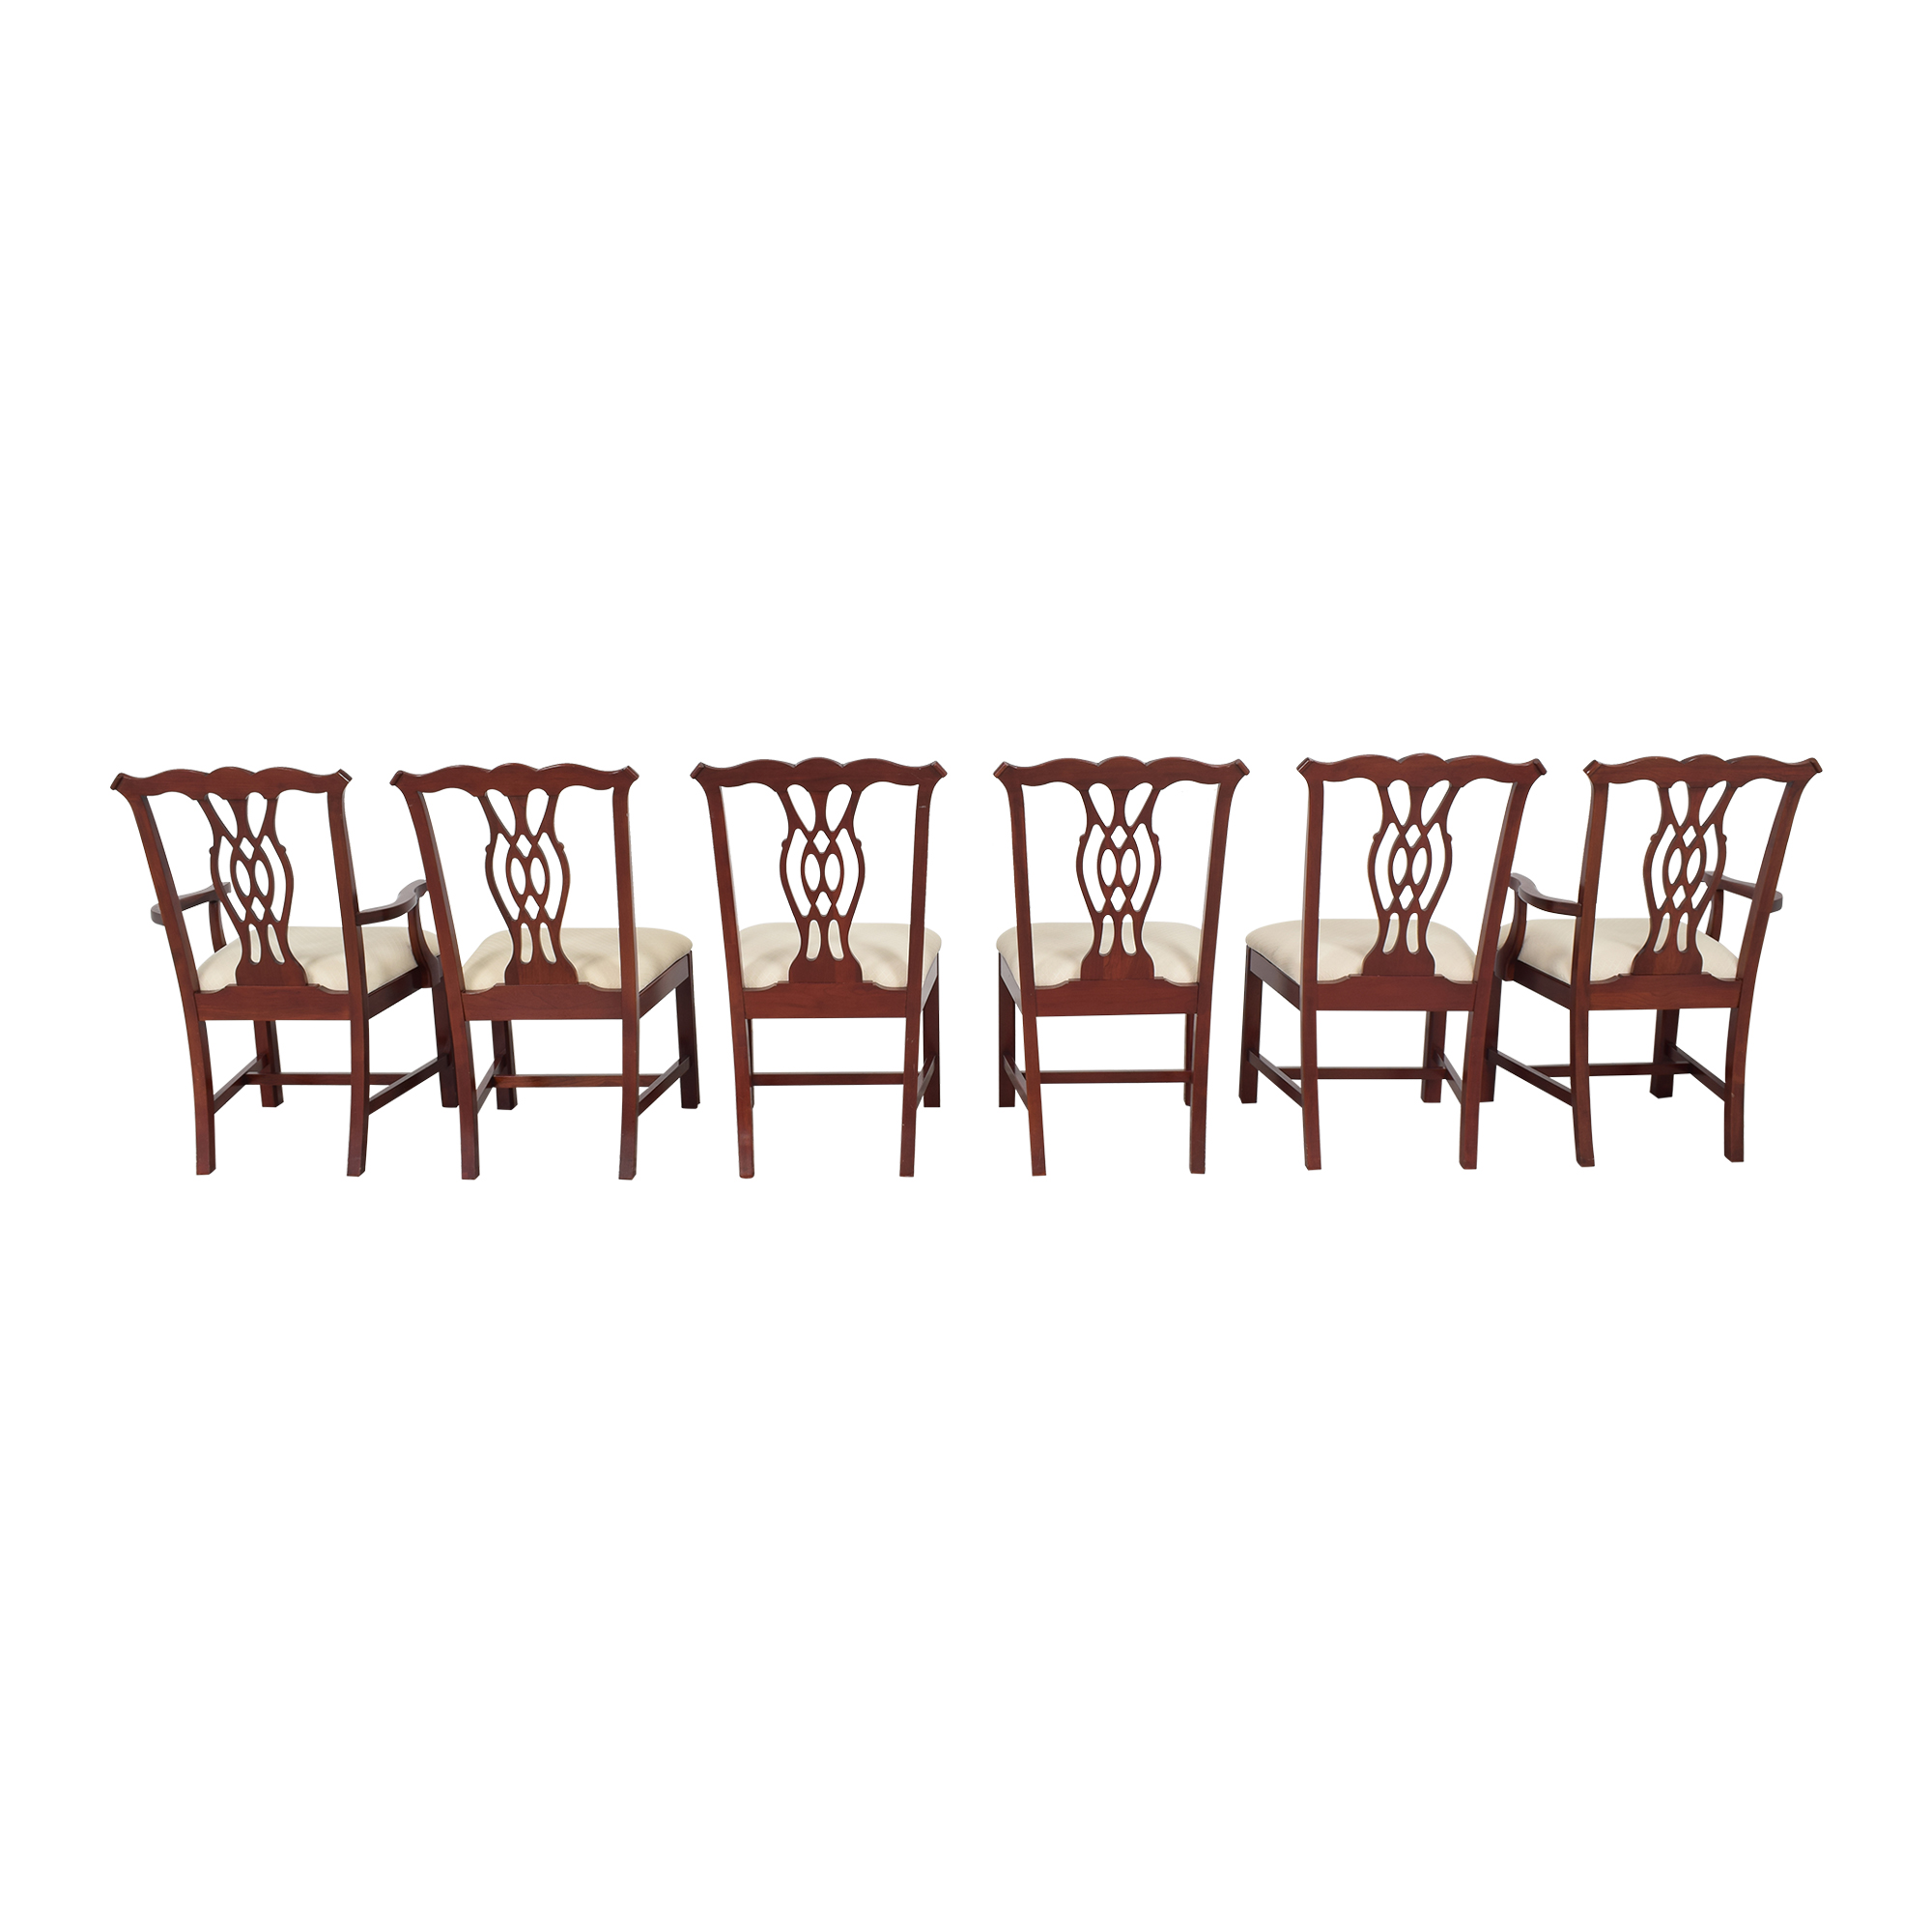 The Colonial Furniture Company The Colonial Furniture Company Chippendale-Style Dining Chairs Dining Chairs